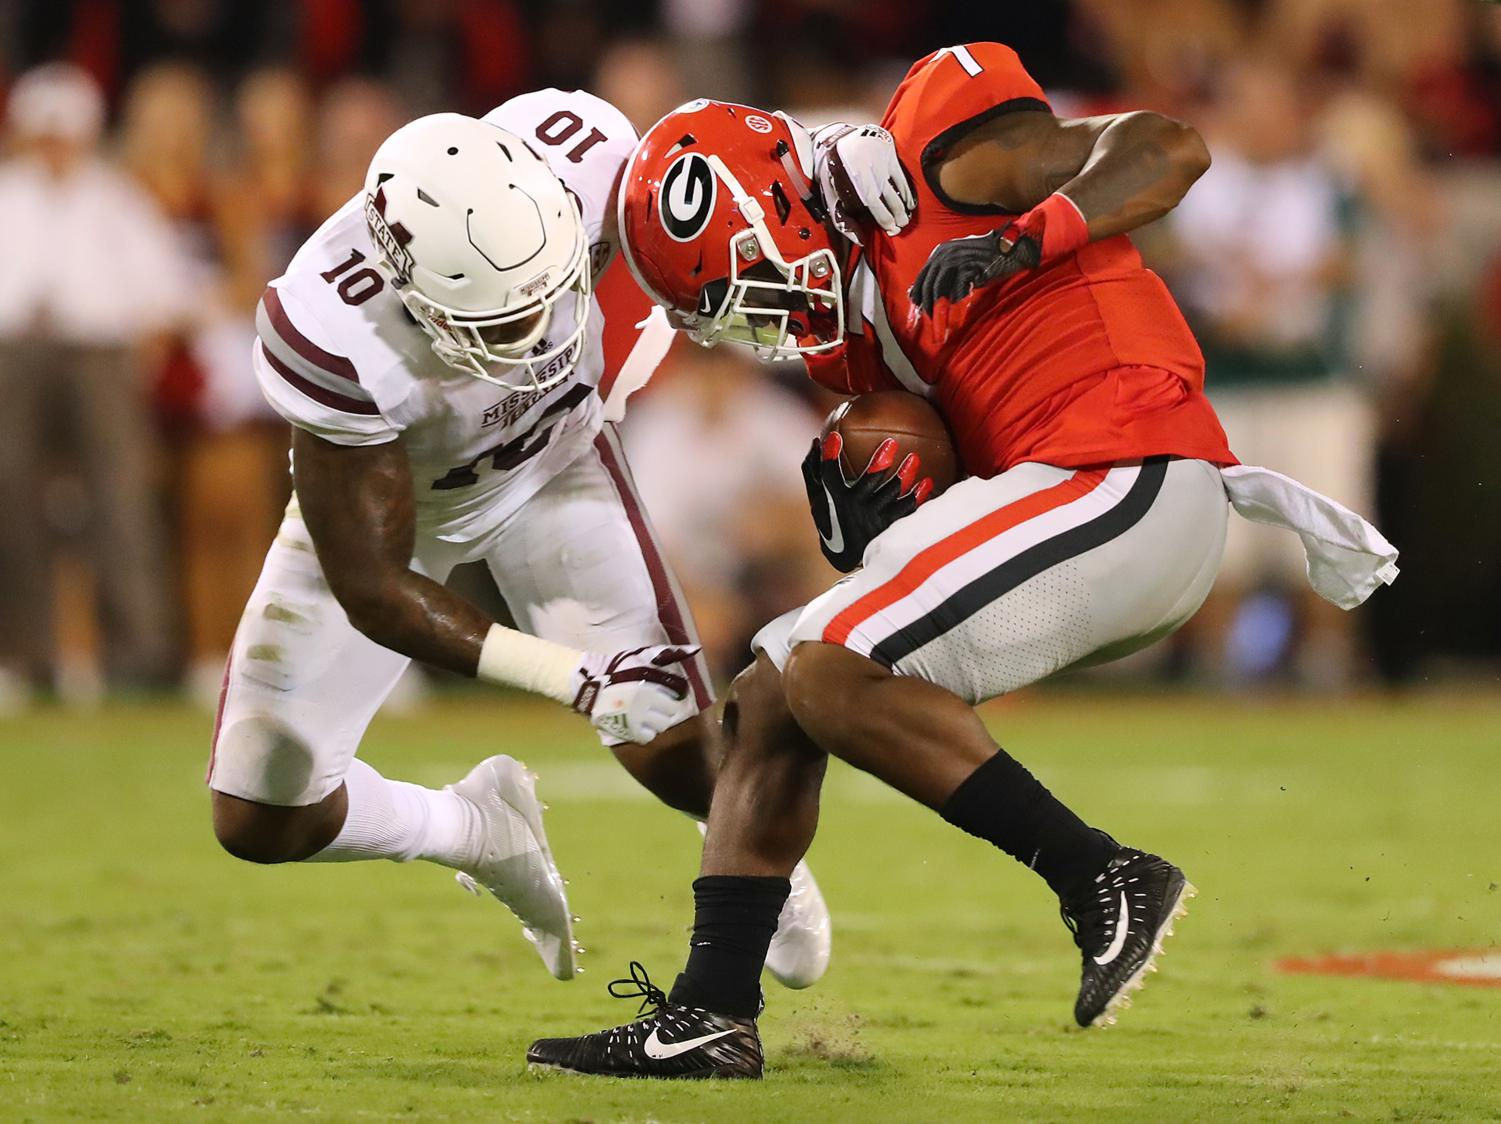 Leo Lewis, a Mississippi State football player who was the key informant in the Ole Miss-Mississippi State scandal, tackles Georgia running back D'Andre Swift in September 2017 amidst the peak of the case.  (Photo Courtesy of Curtis Compton/Atlanta Journal-Constitution/TNS)